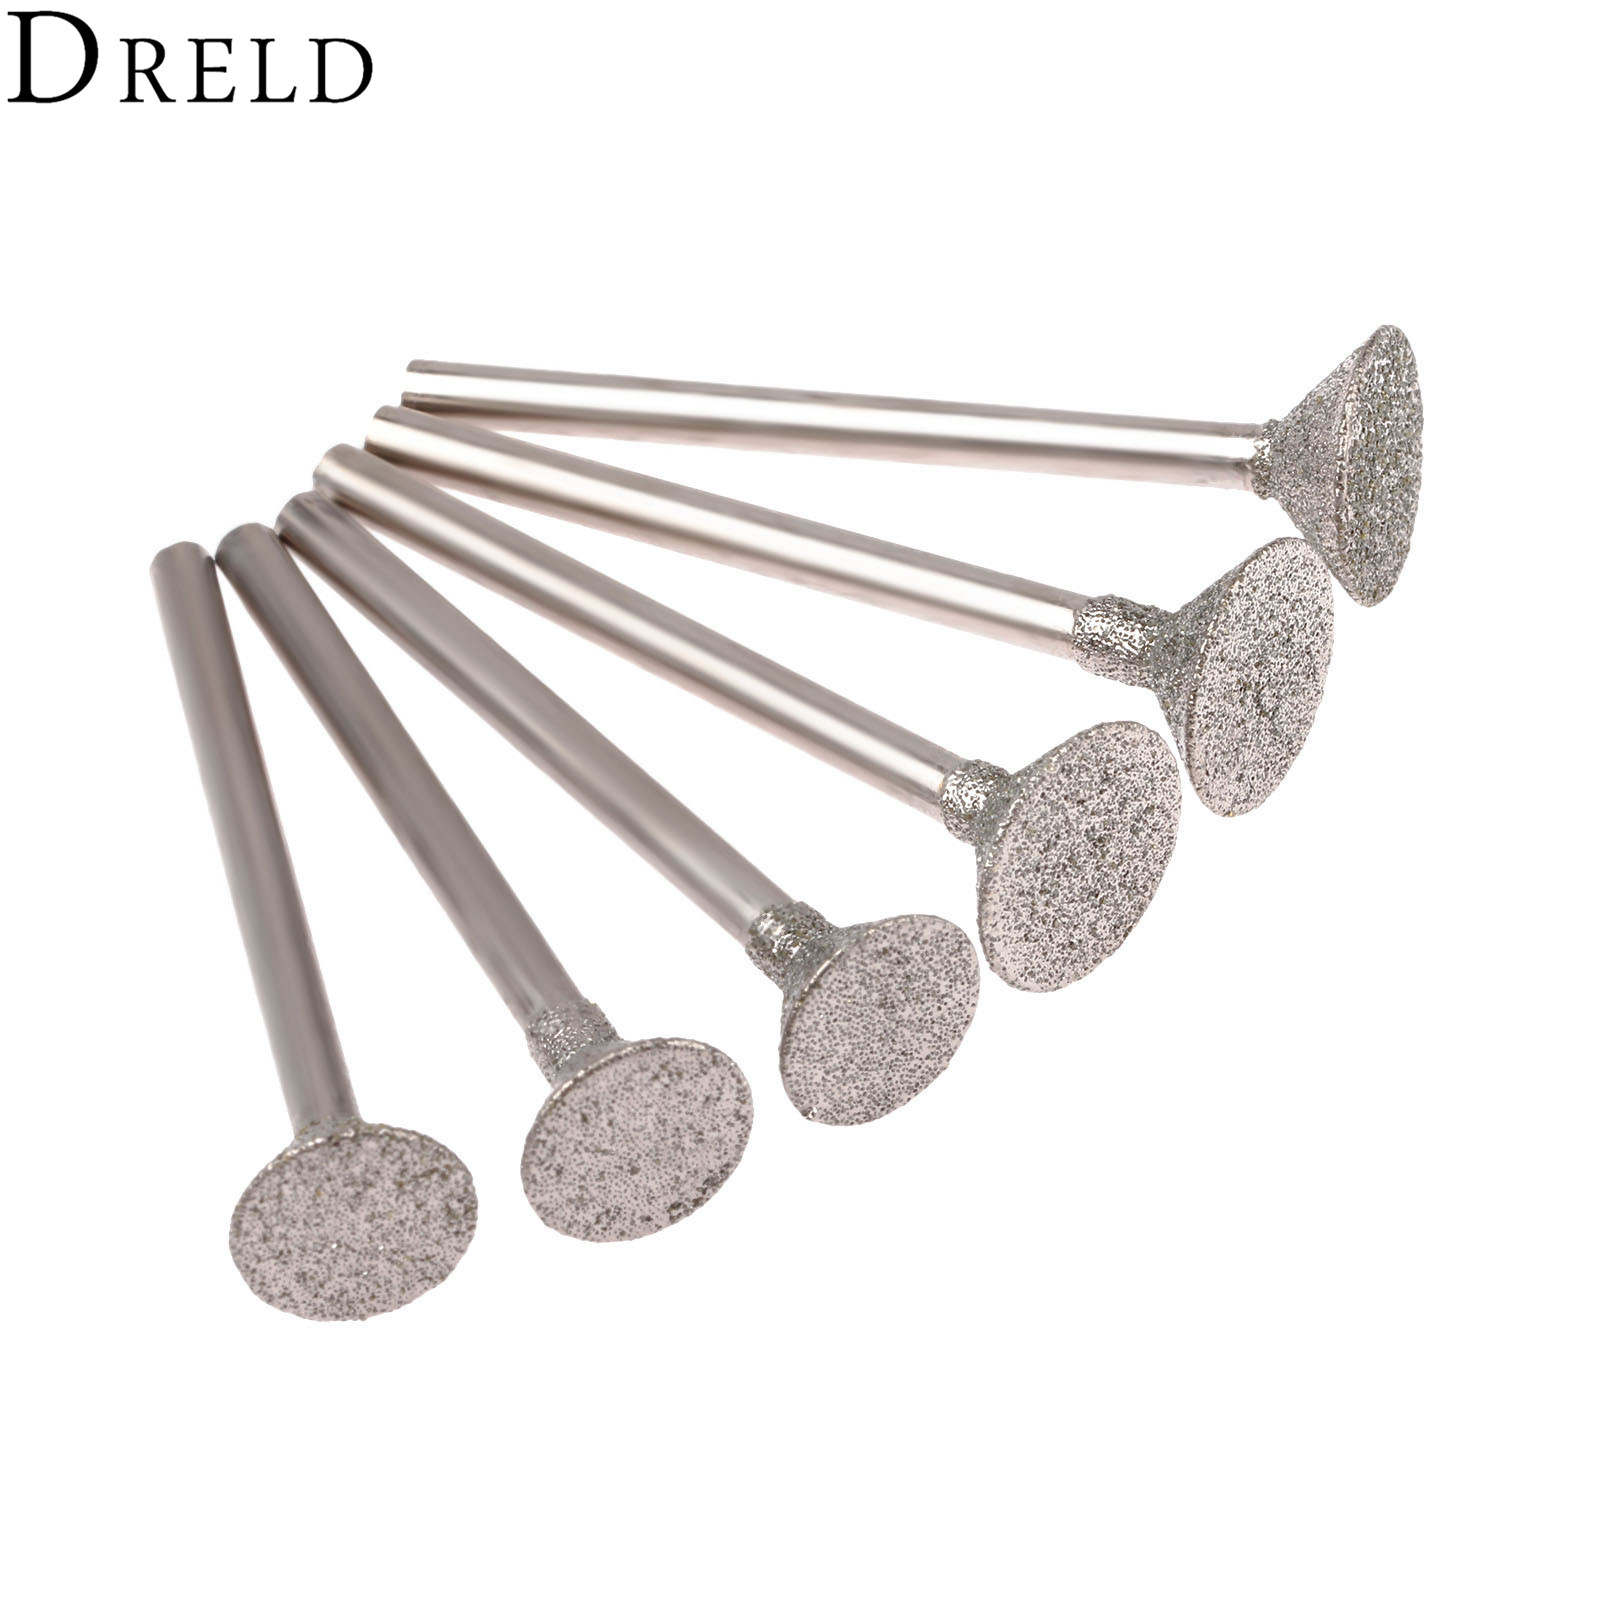 DRELD 6Pcs Dremel Accesories Drill Diamond Grinding Head Burrs Bits 3mm Shank Jade Stone Carving Polishing Engraving Tool